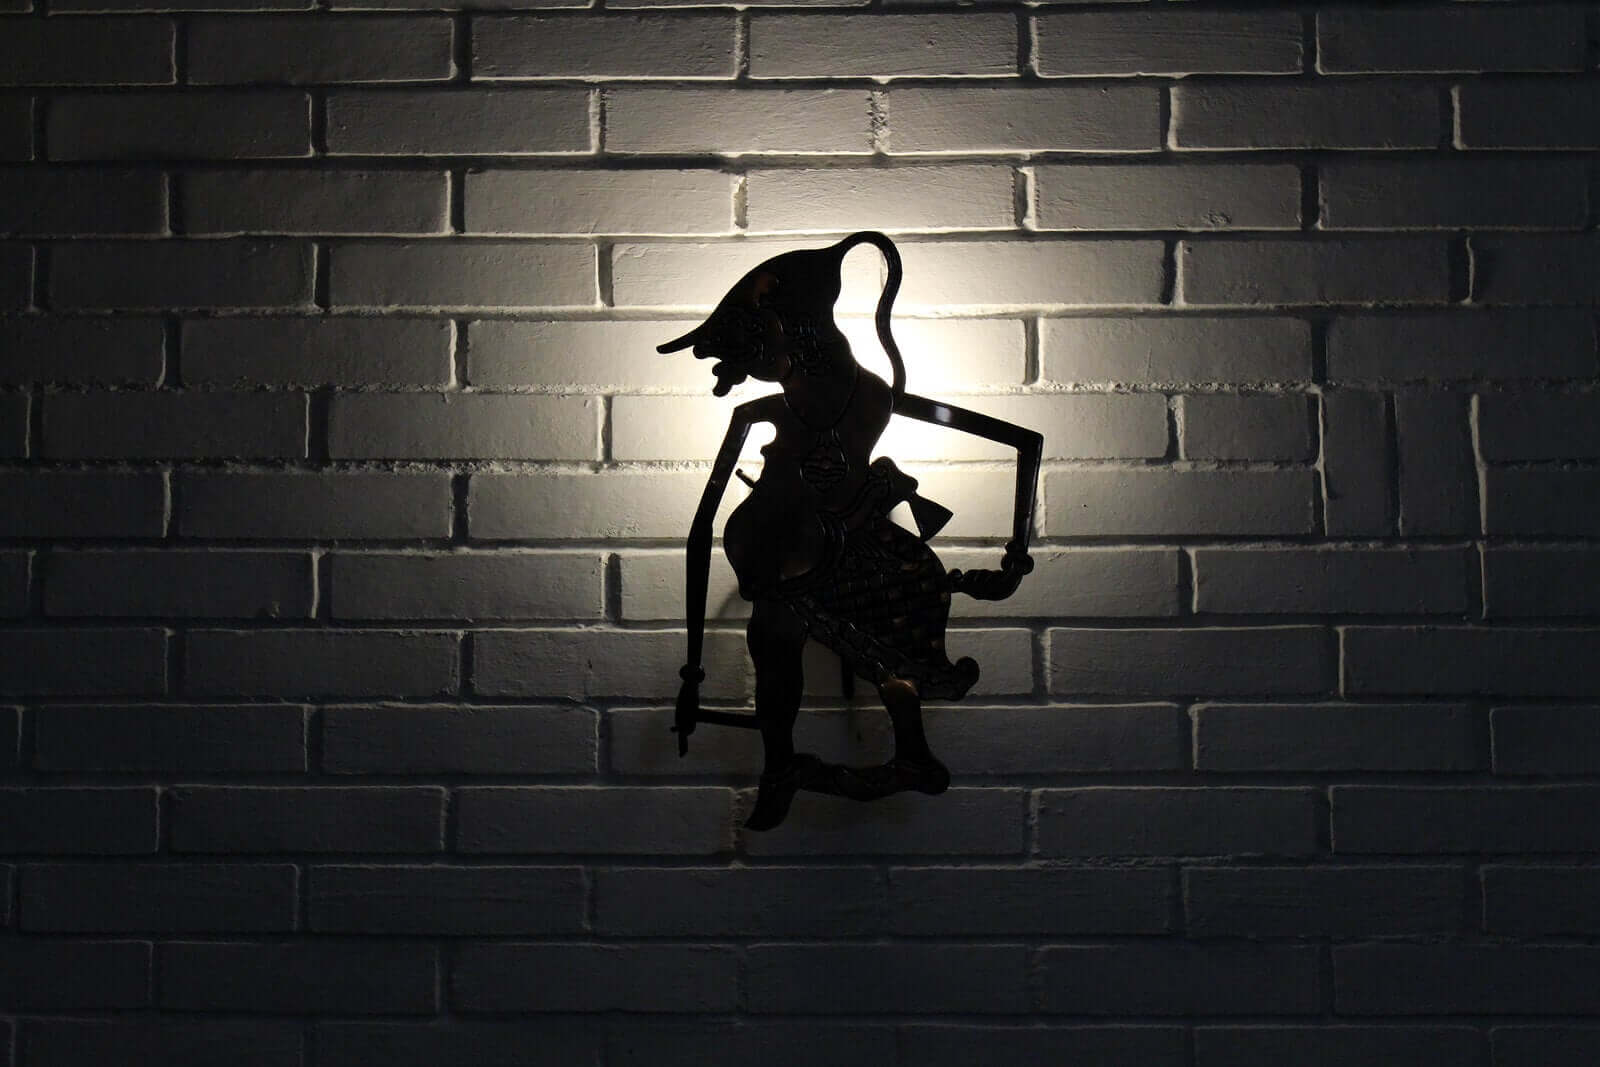 A shadow lamp.